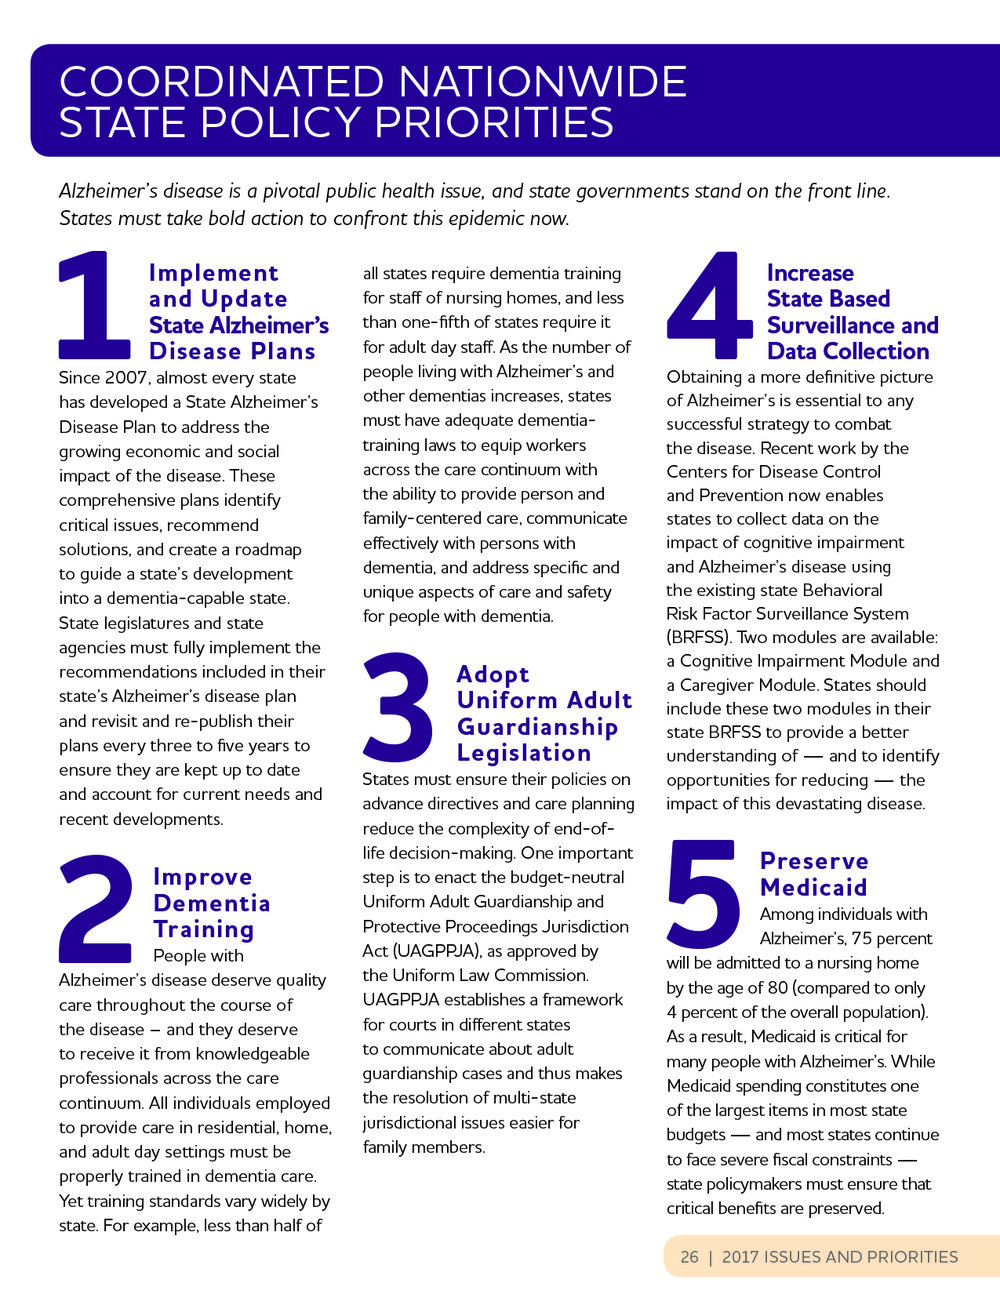 Alzheimer's Association Policy Priorities